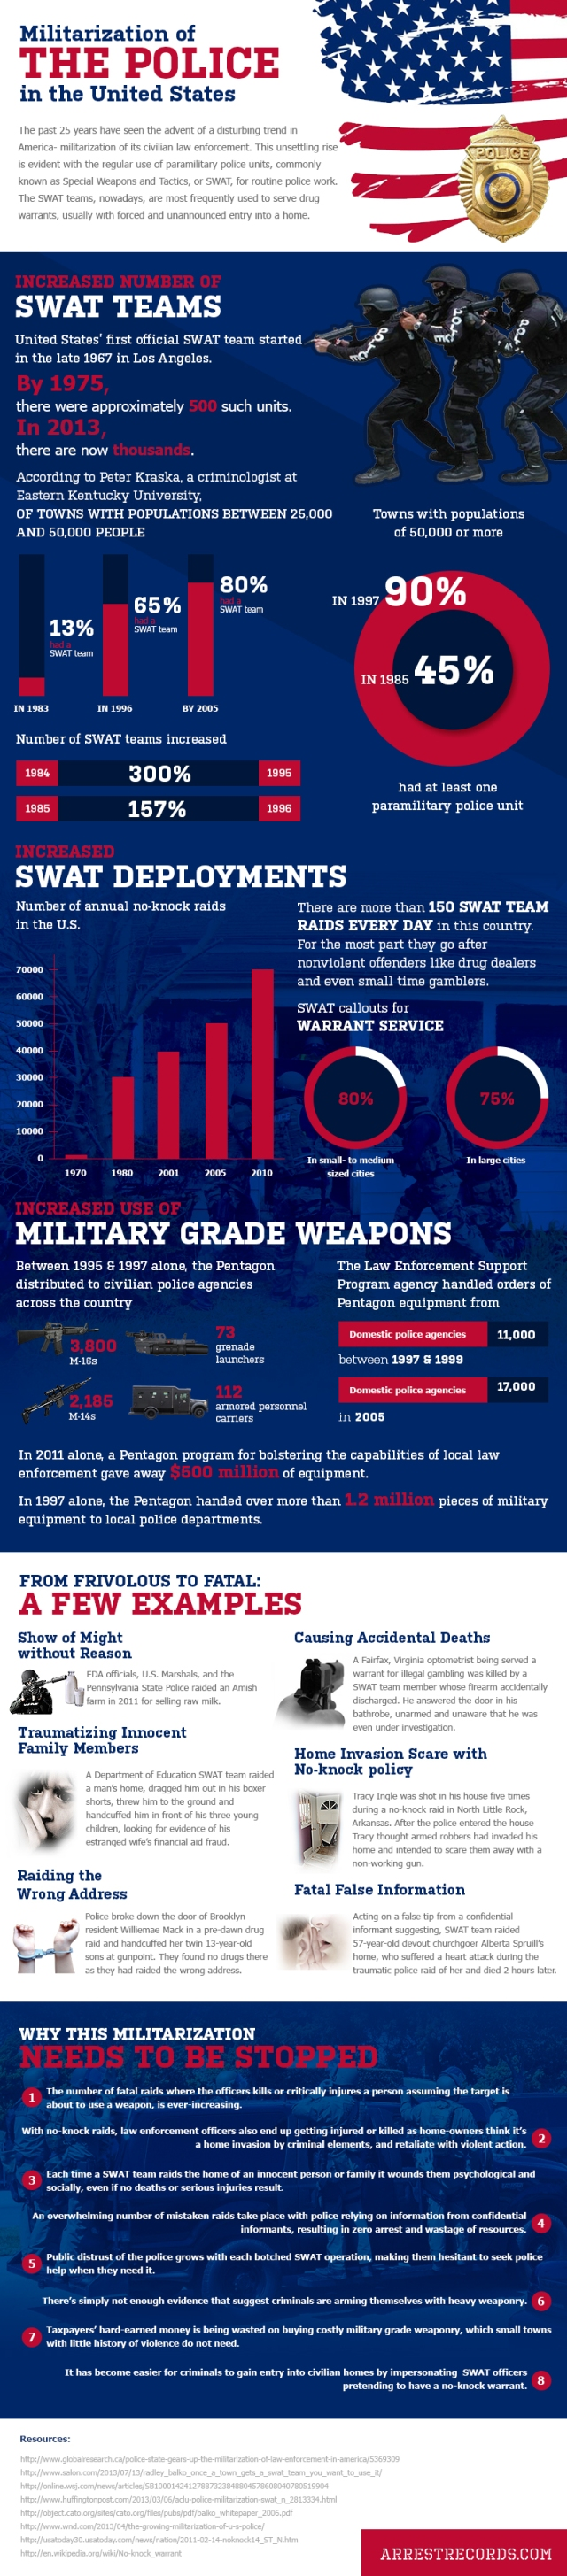 militarized police by numbers